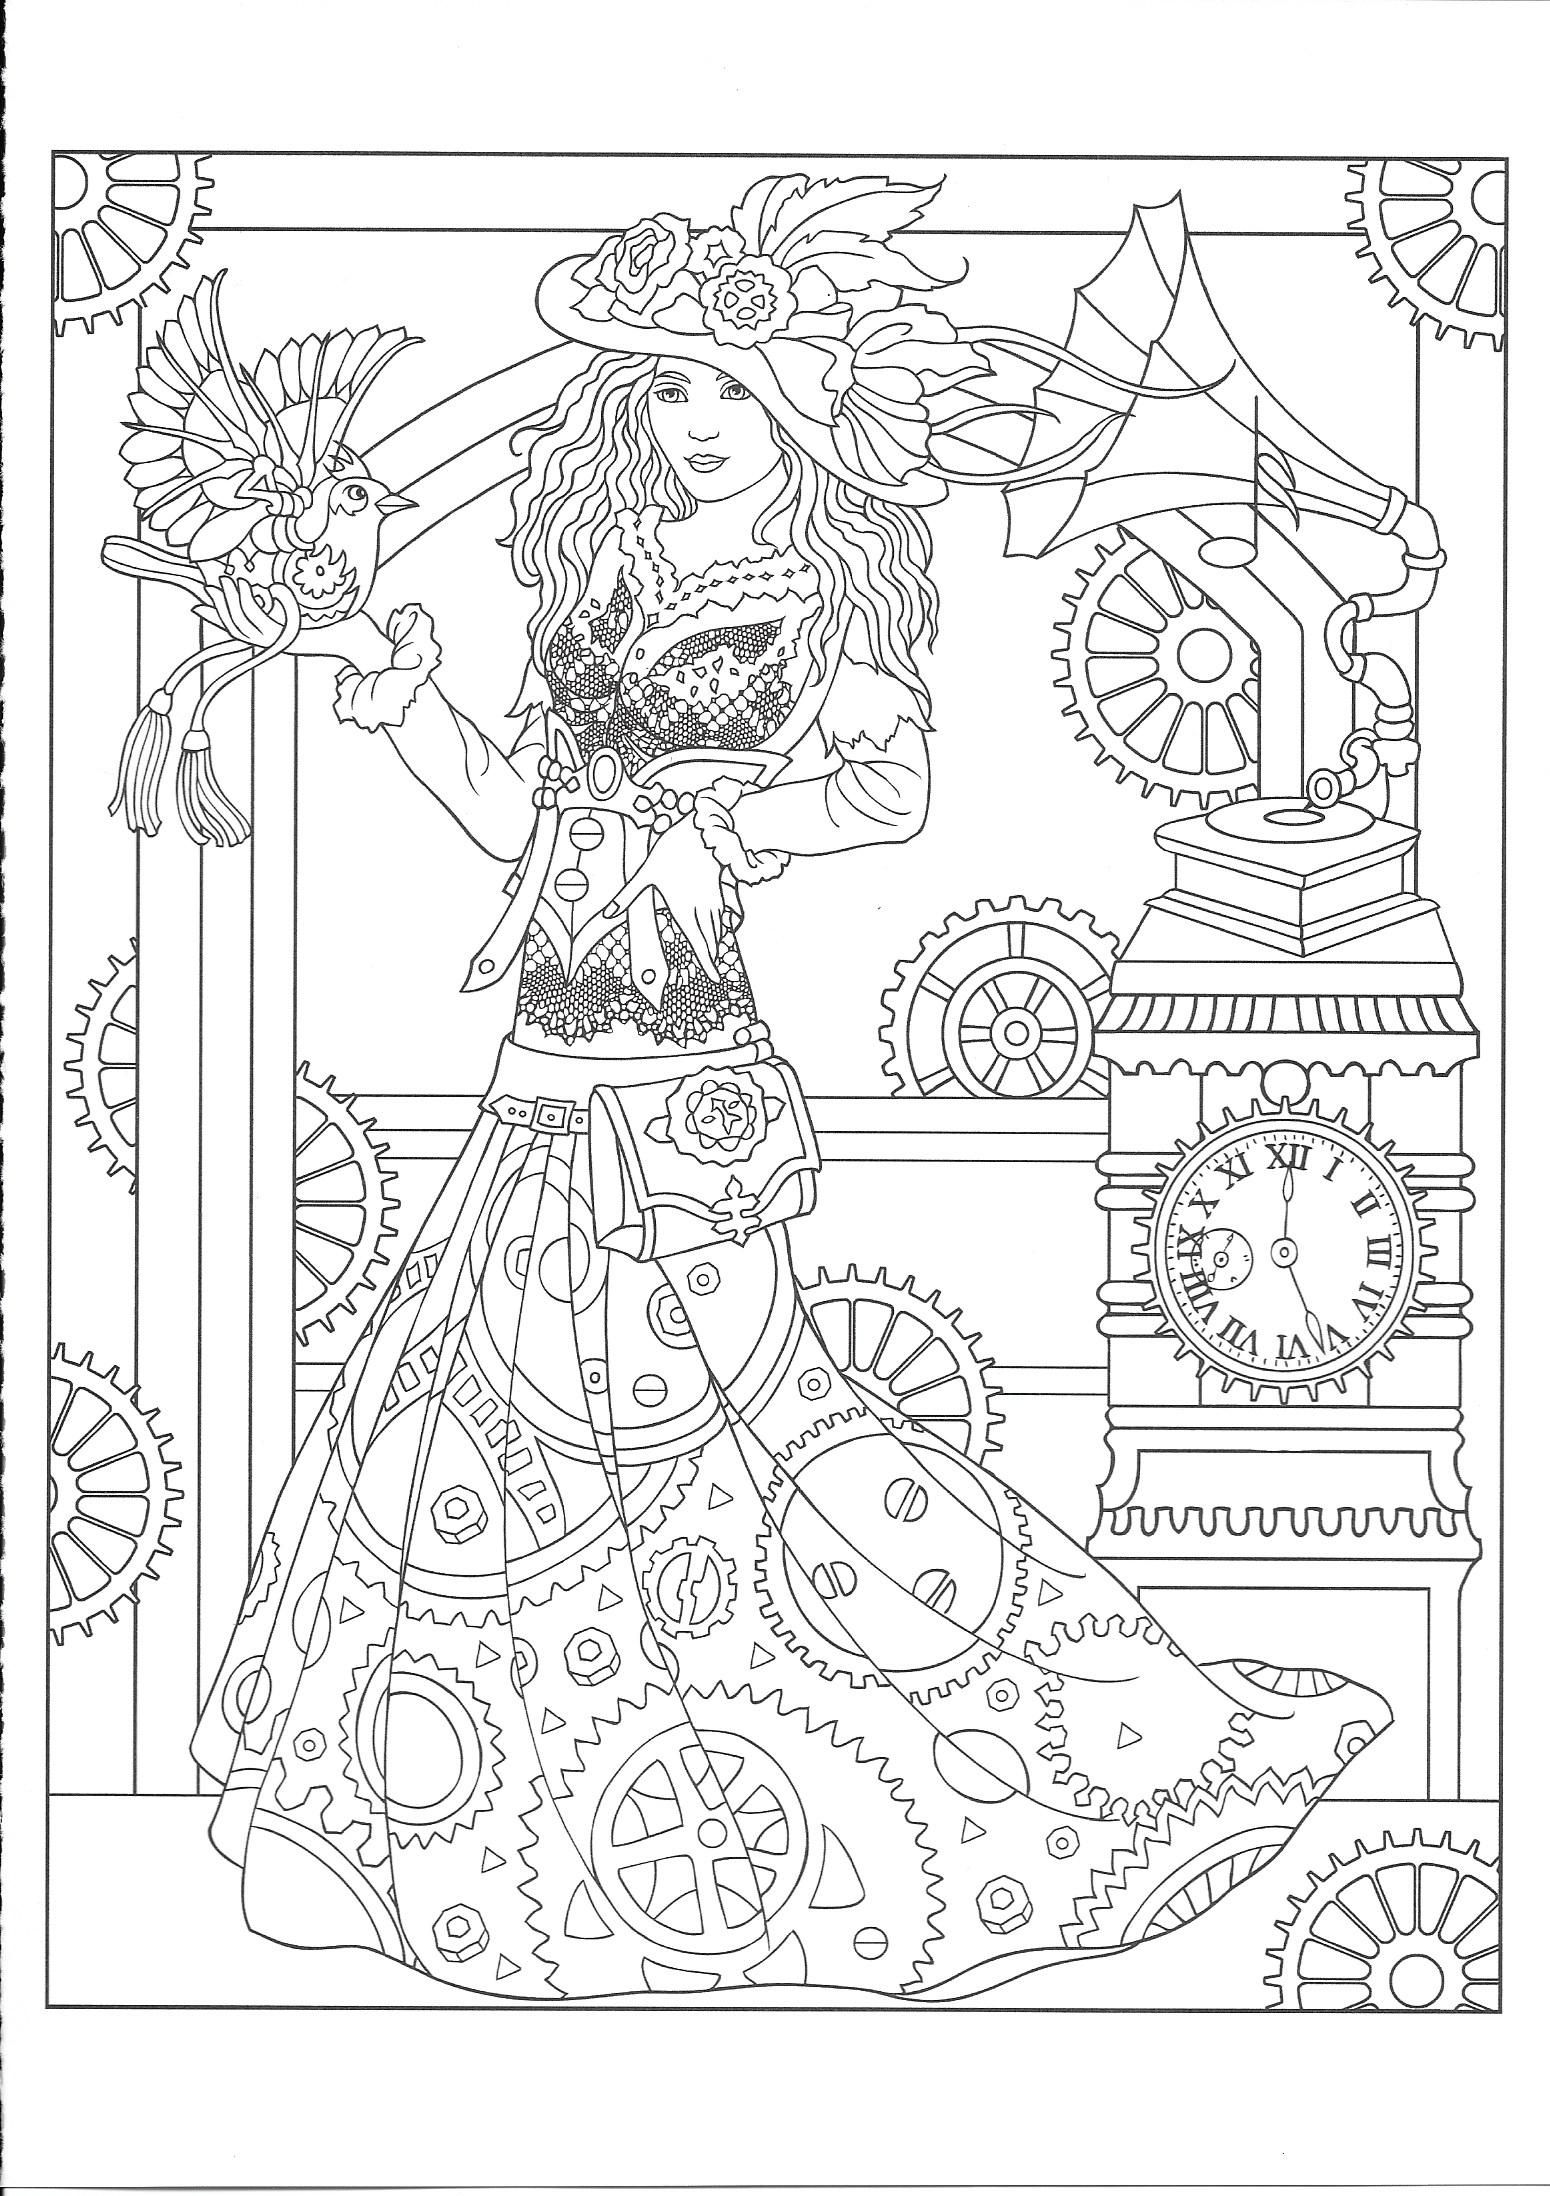 Dover Publications Creative Haven Steampunk Fashions Coloring Book Artwork By Marty Noble P19